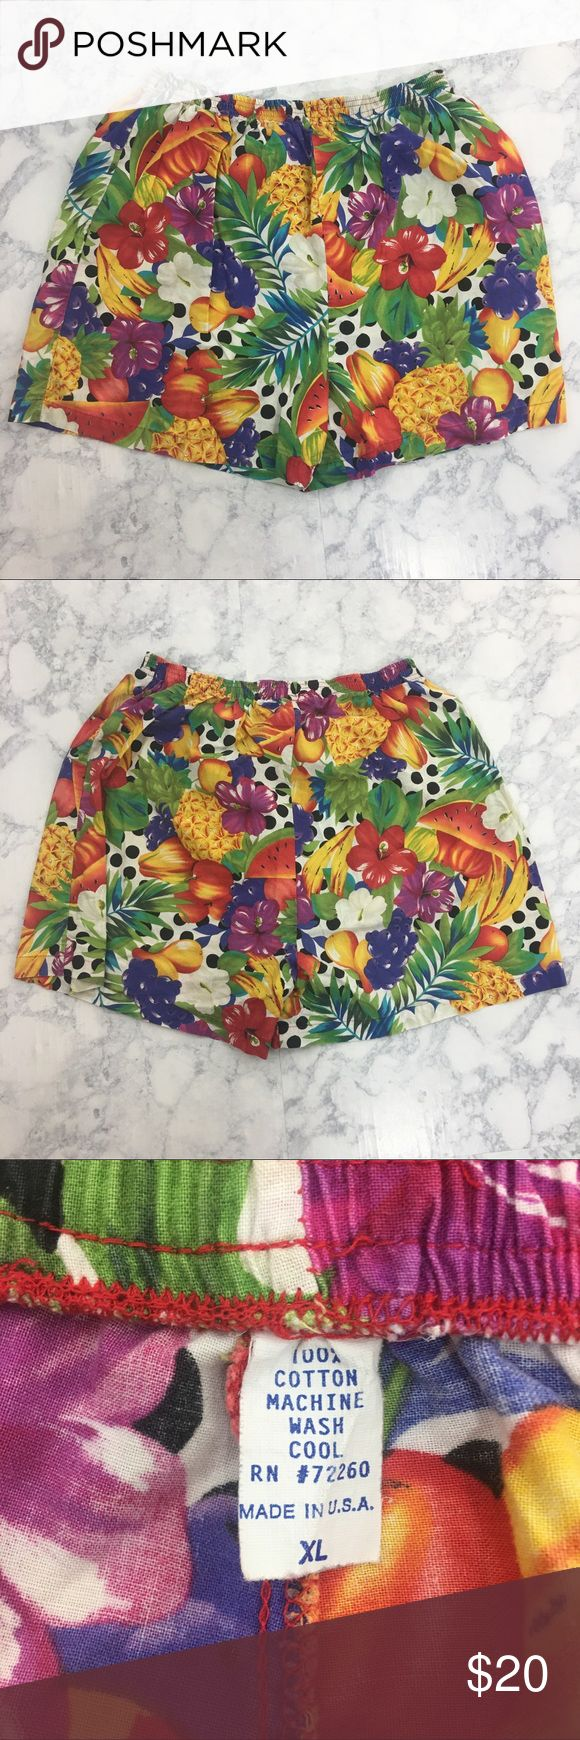 VTG 90's Pull On Fruity Floral Polka Dot Shorts Excellent used conditon. Lightweight. These have a fun design featuring: grapes, pineapple, watermelon, banana, orange, hibiscus, tropical leaves, and dots. Super colorful. These could fit a large. Vintage Shorts